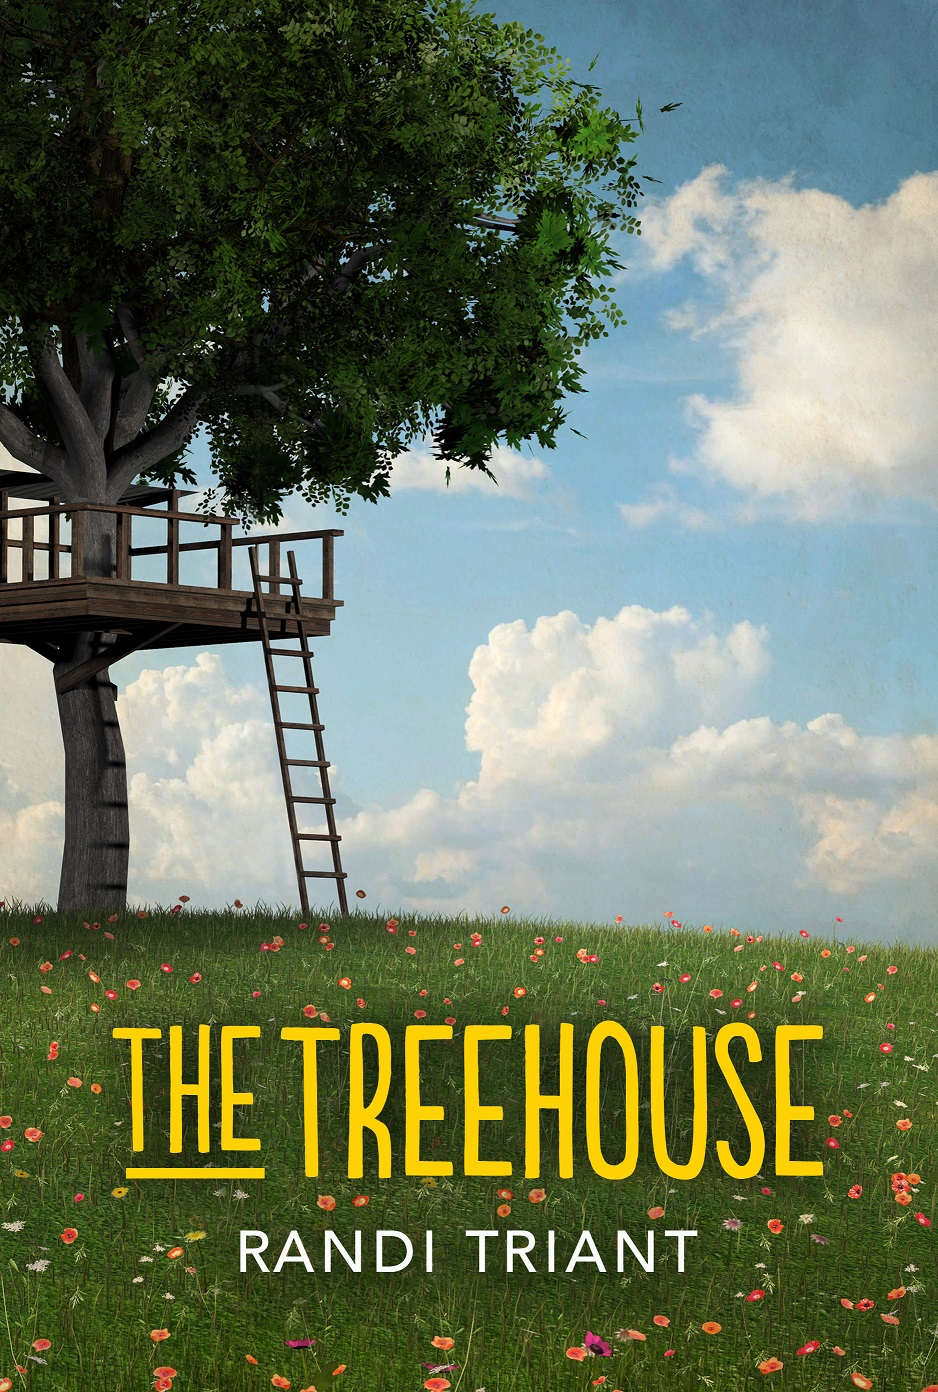 Buy The Treehouse by Randi Triant here